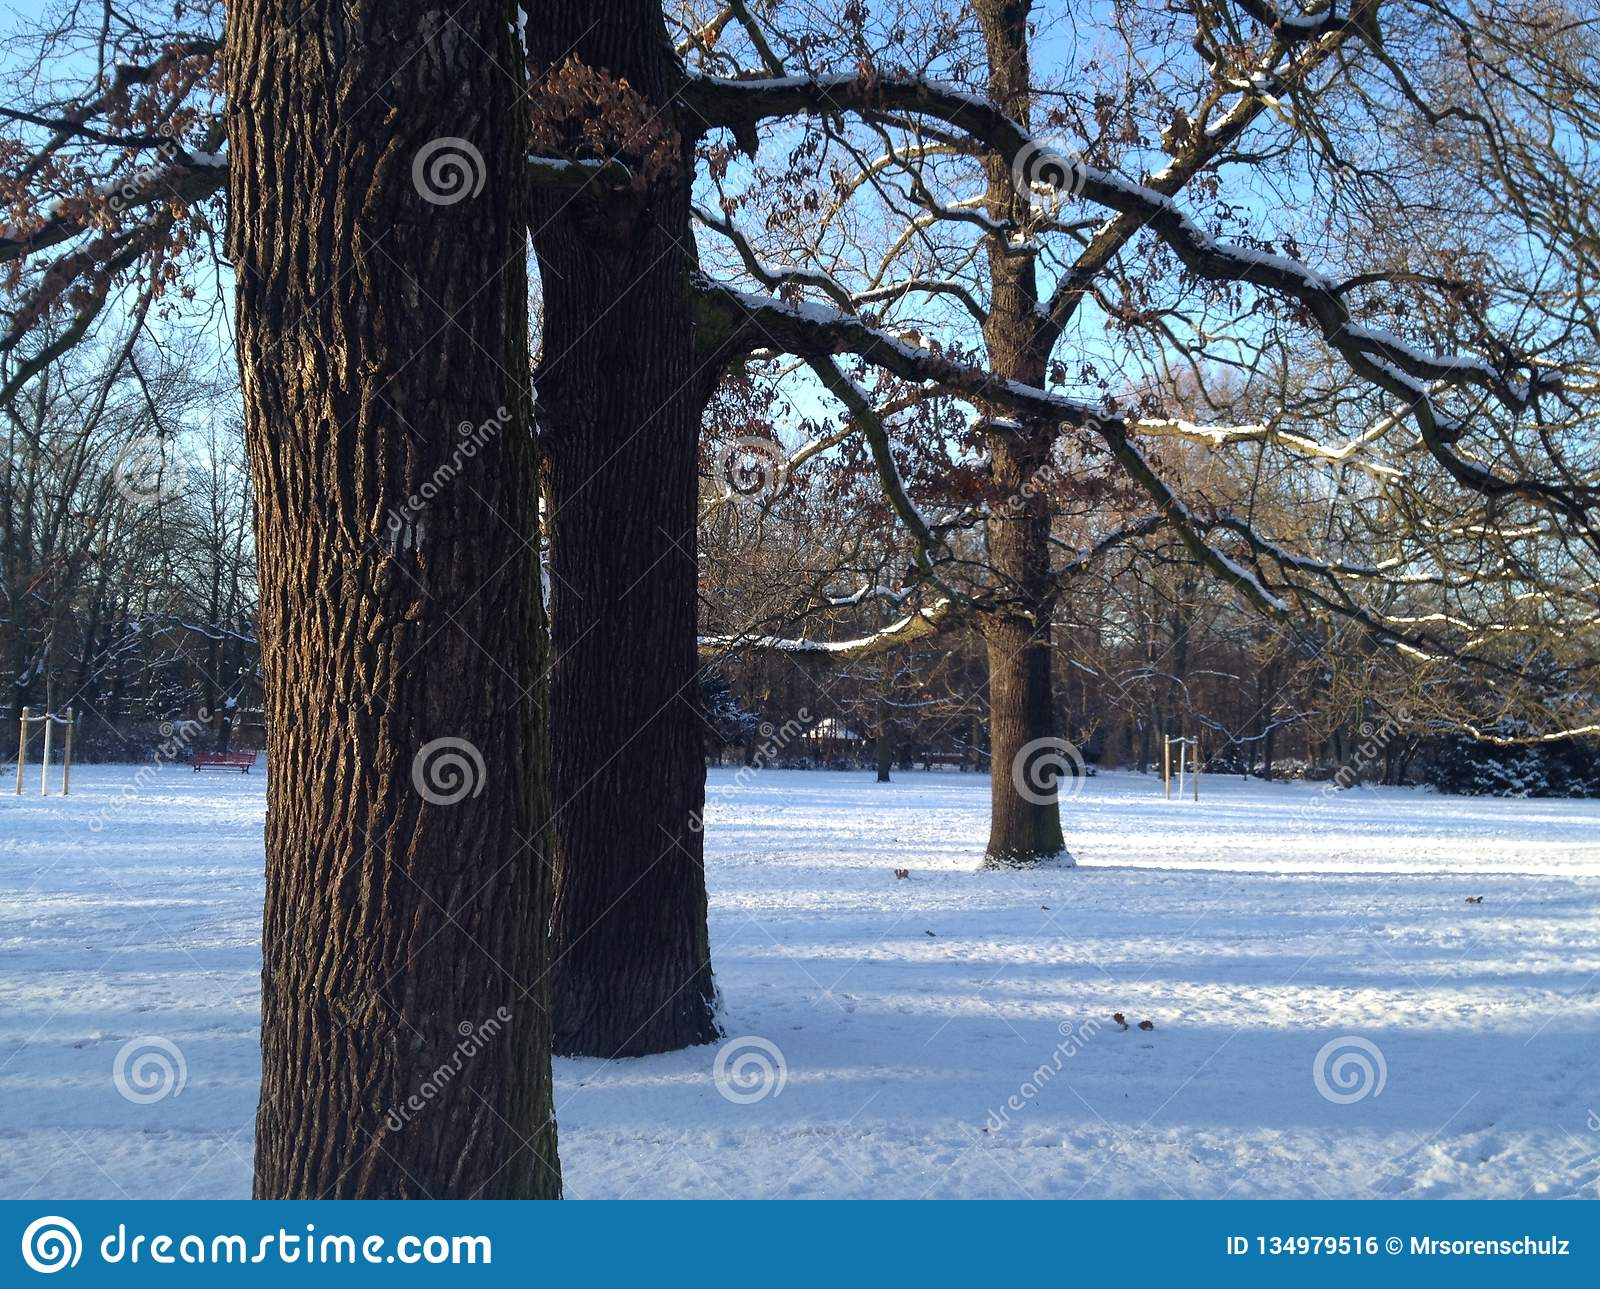 Beautiful Winter Scenery In Berlin Park Hasenheide With Snow Covered